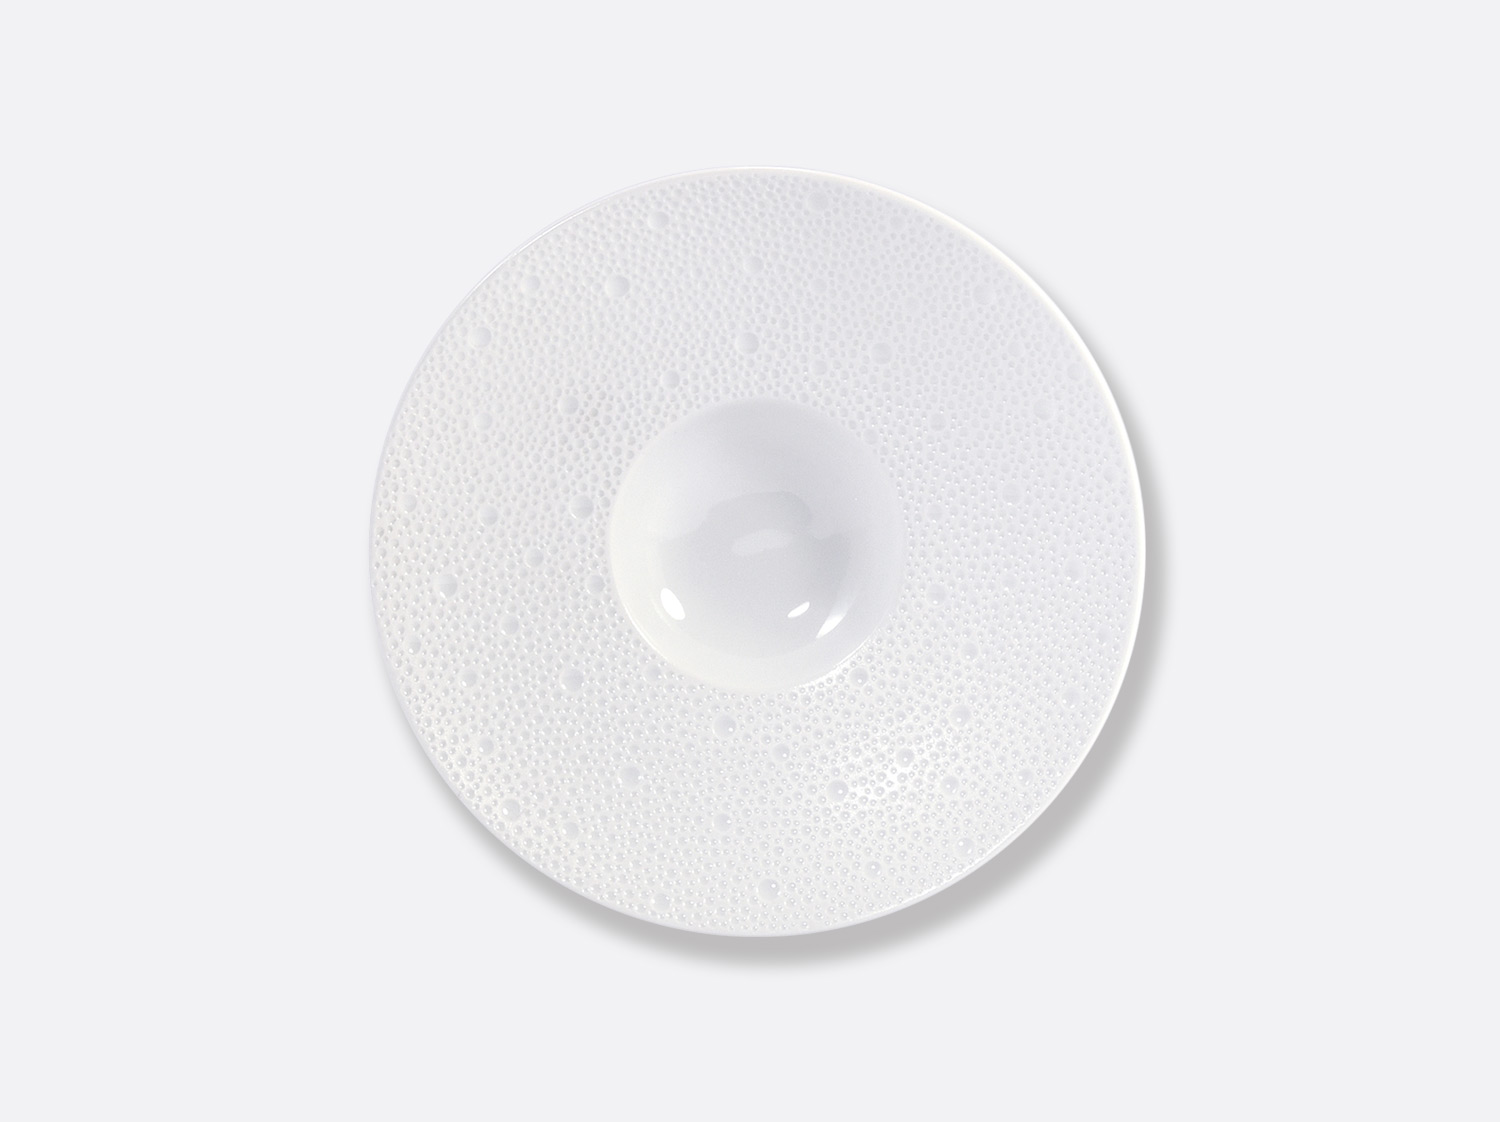 China パシフィックプレート 23 cm of the collection ECUME BLANC AILE MAT | Bernardaud